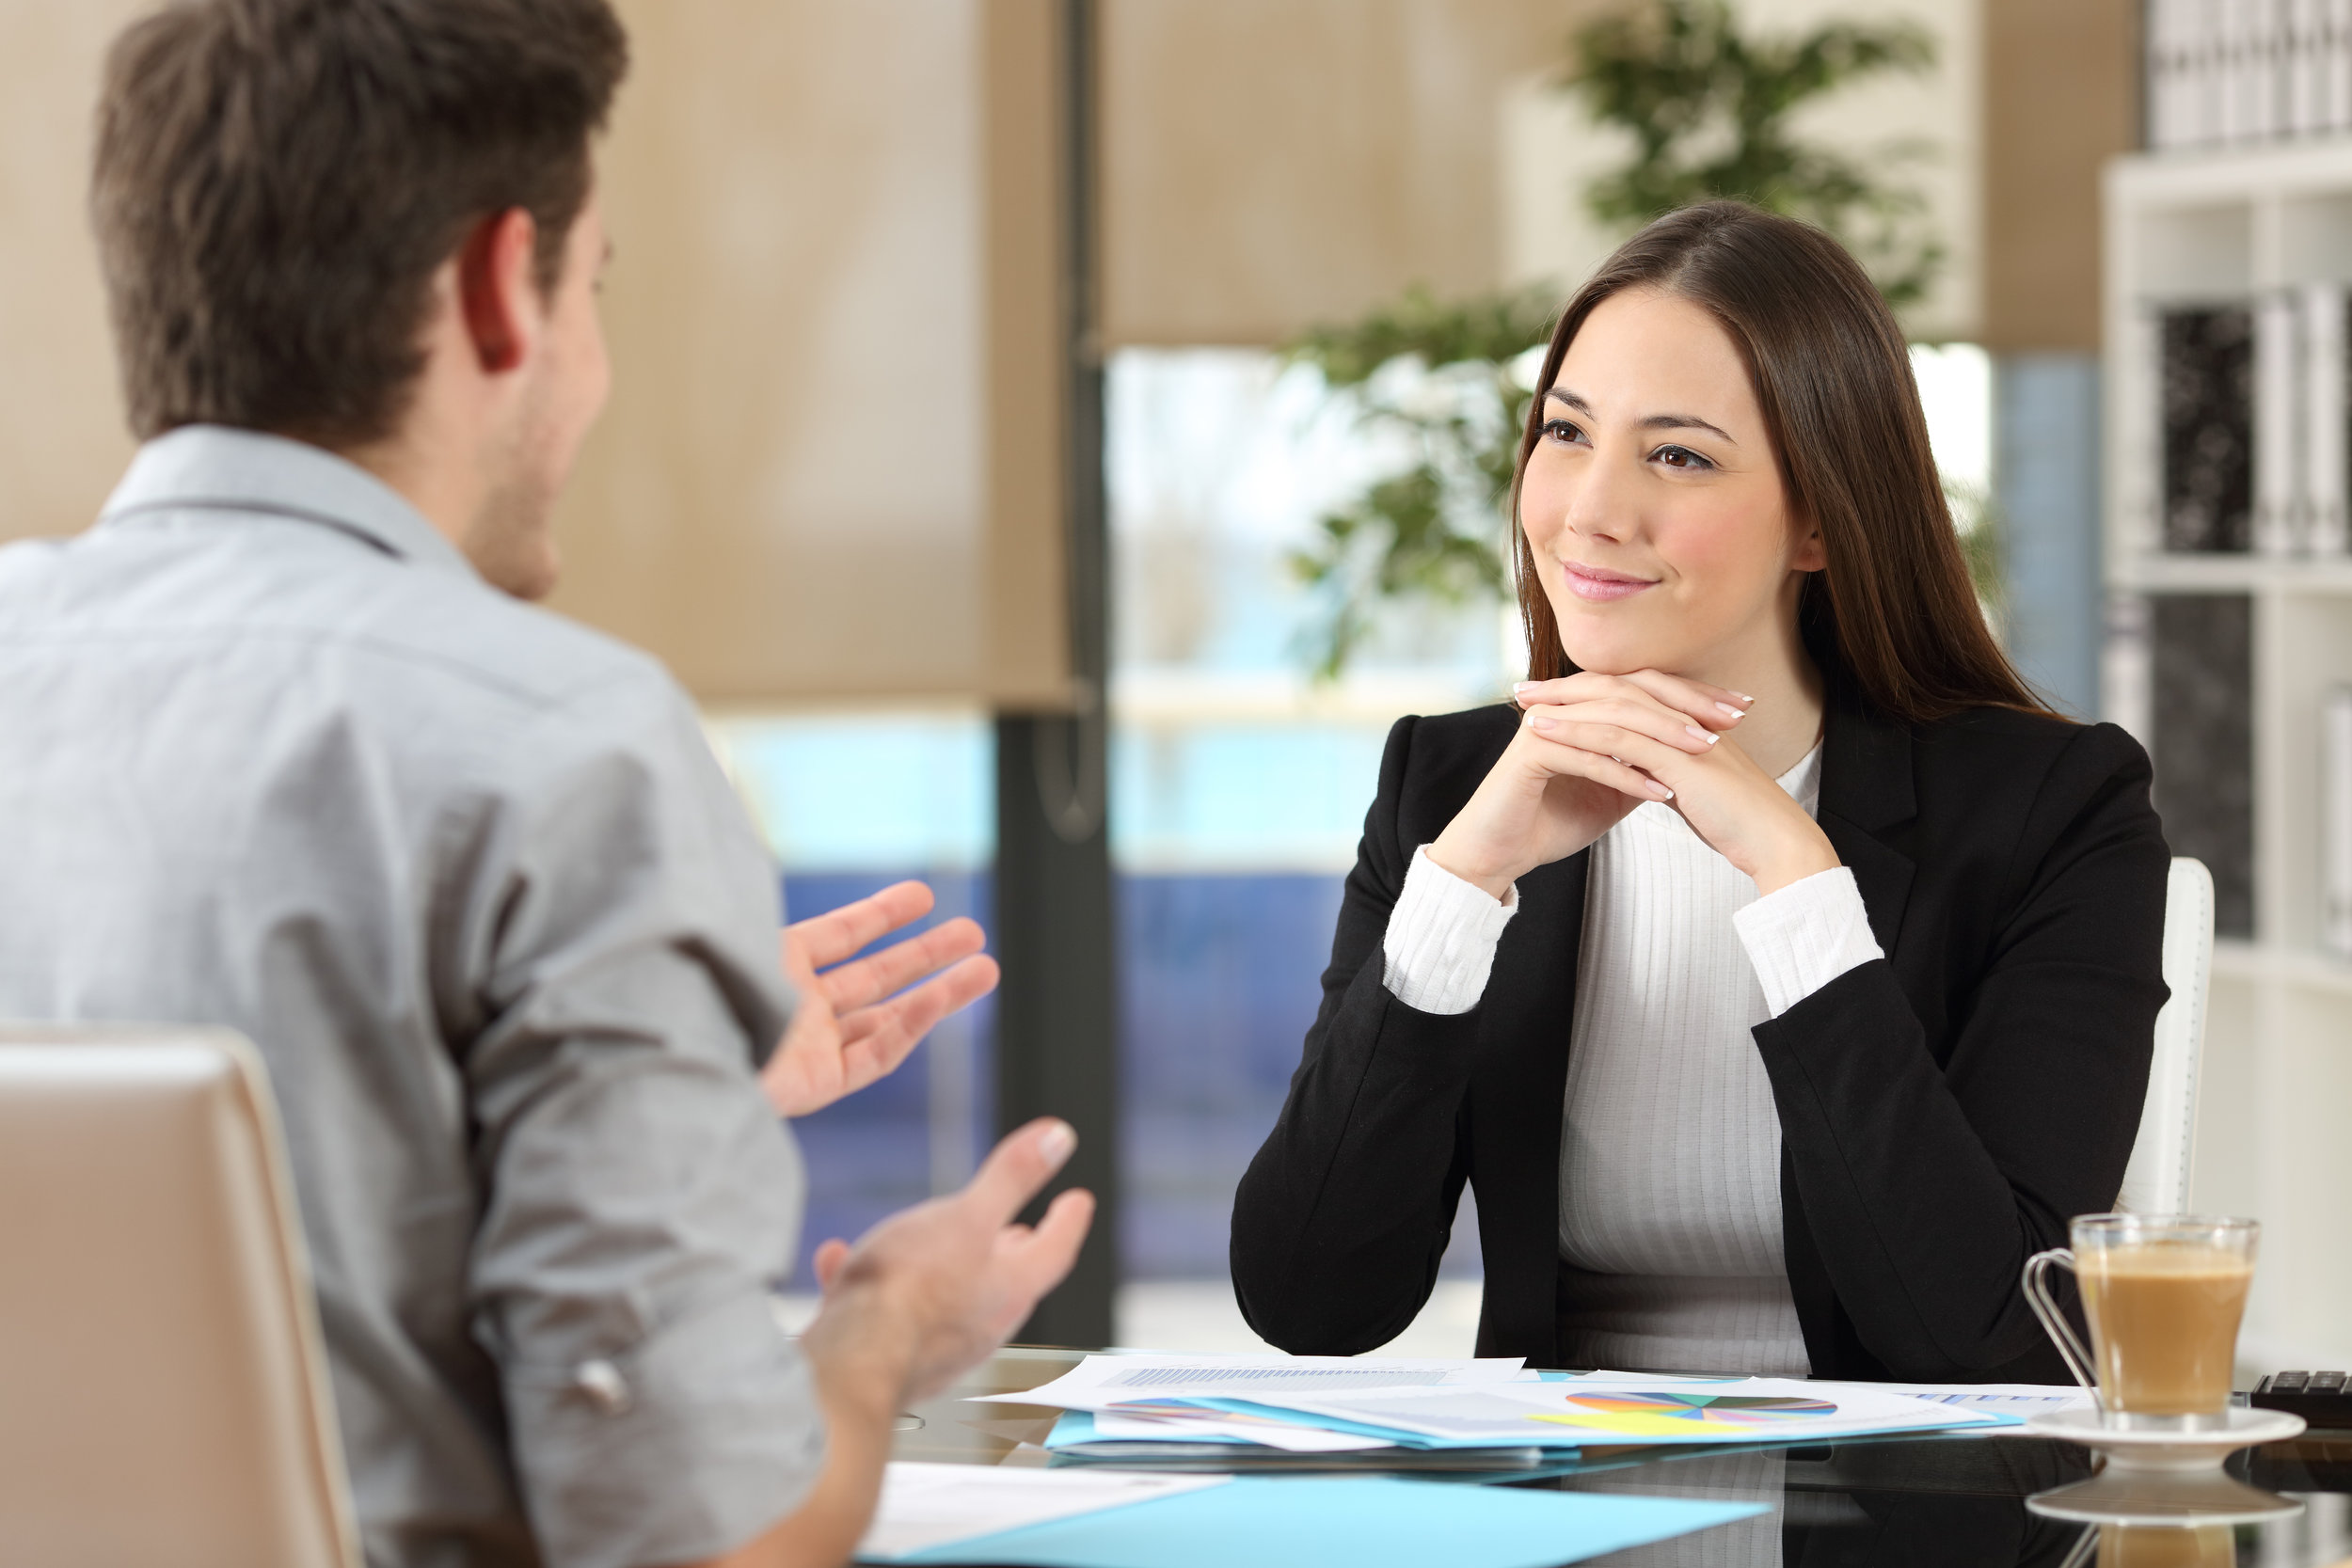 get and receive feedback for an excellent candidate experience